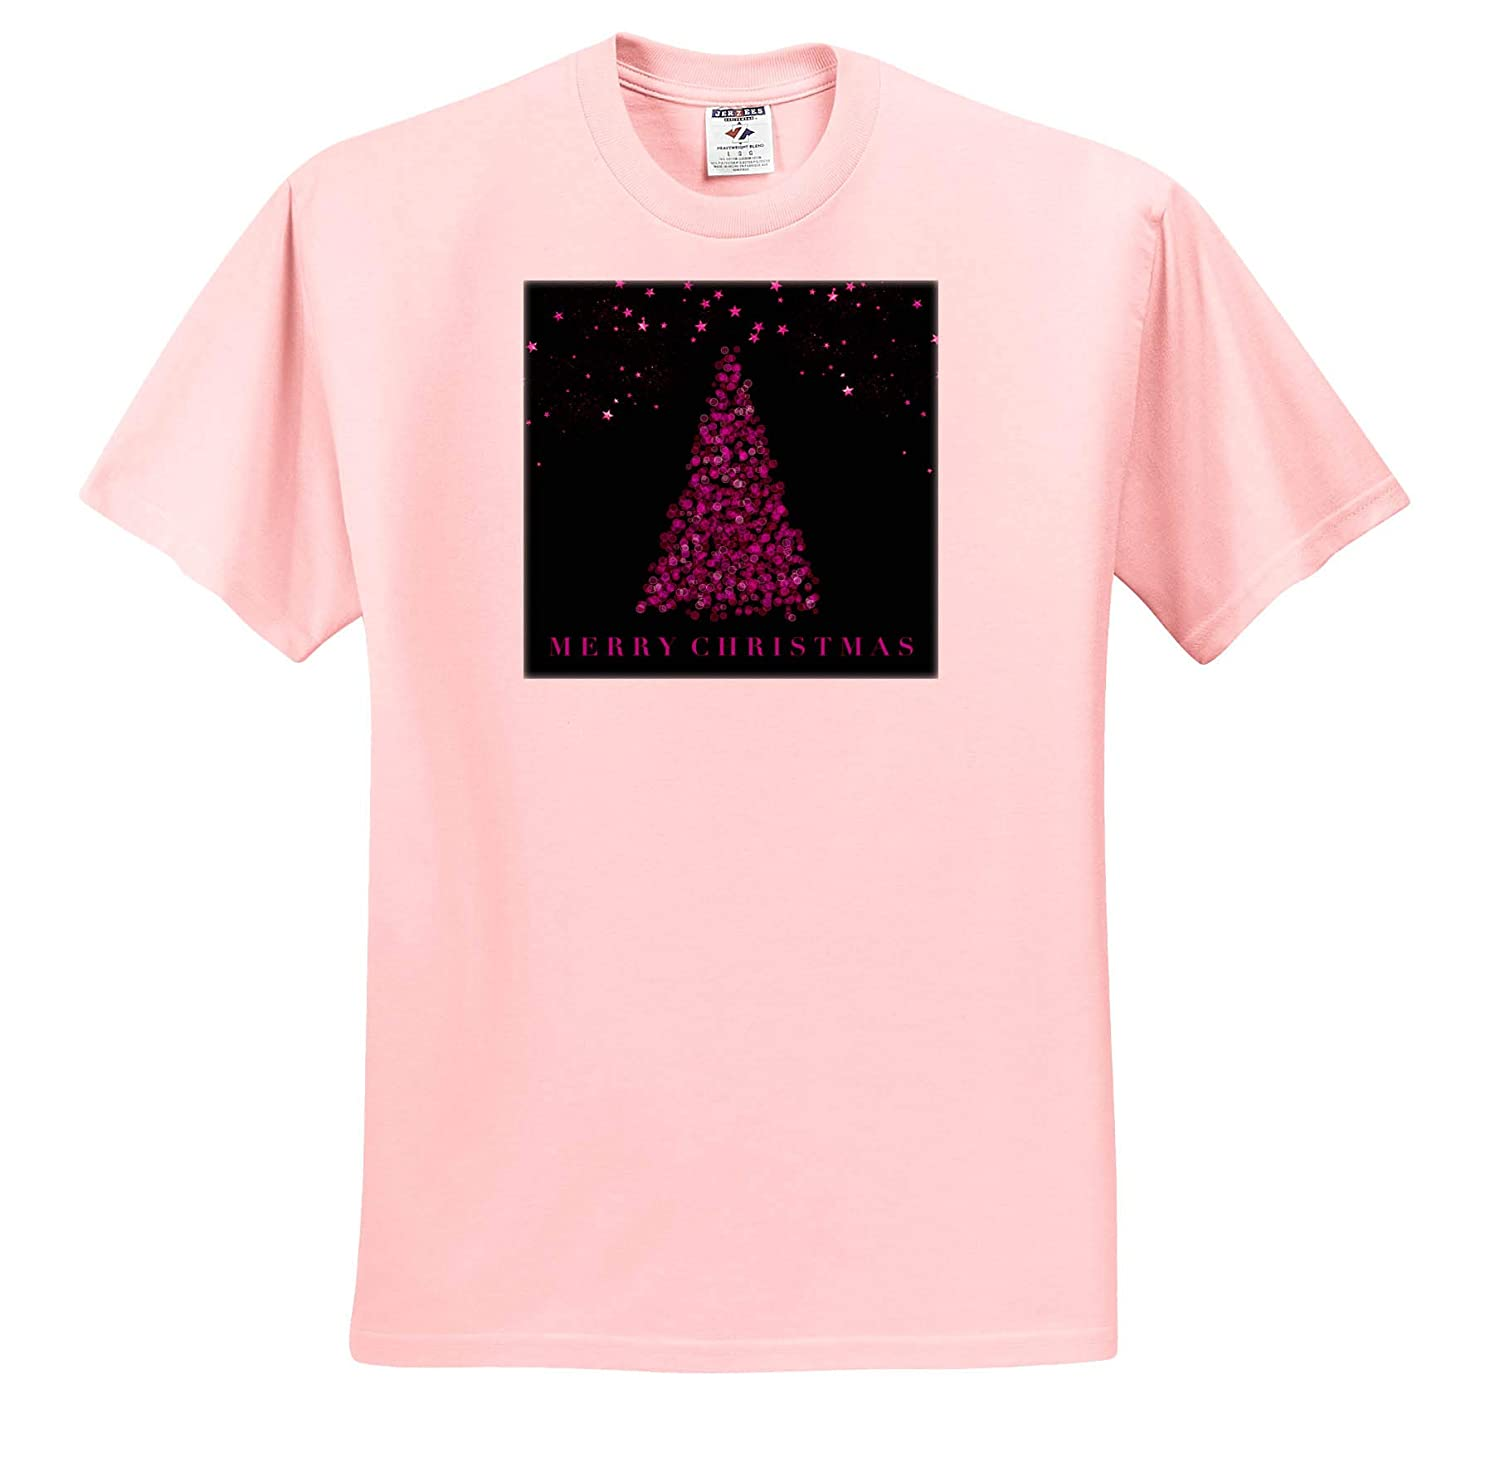 Modern Christmas Tree Design in Pink and Black 3dRose Andrea Haase Christmas Illustration T-Shirts